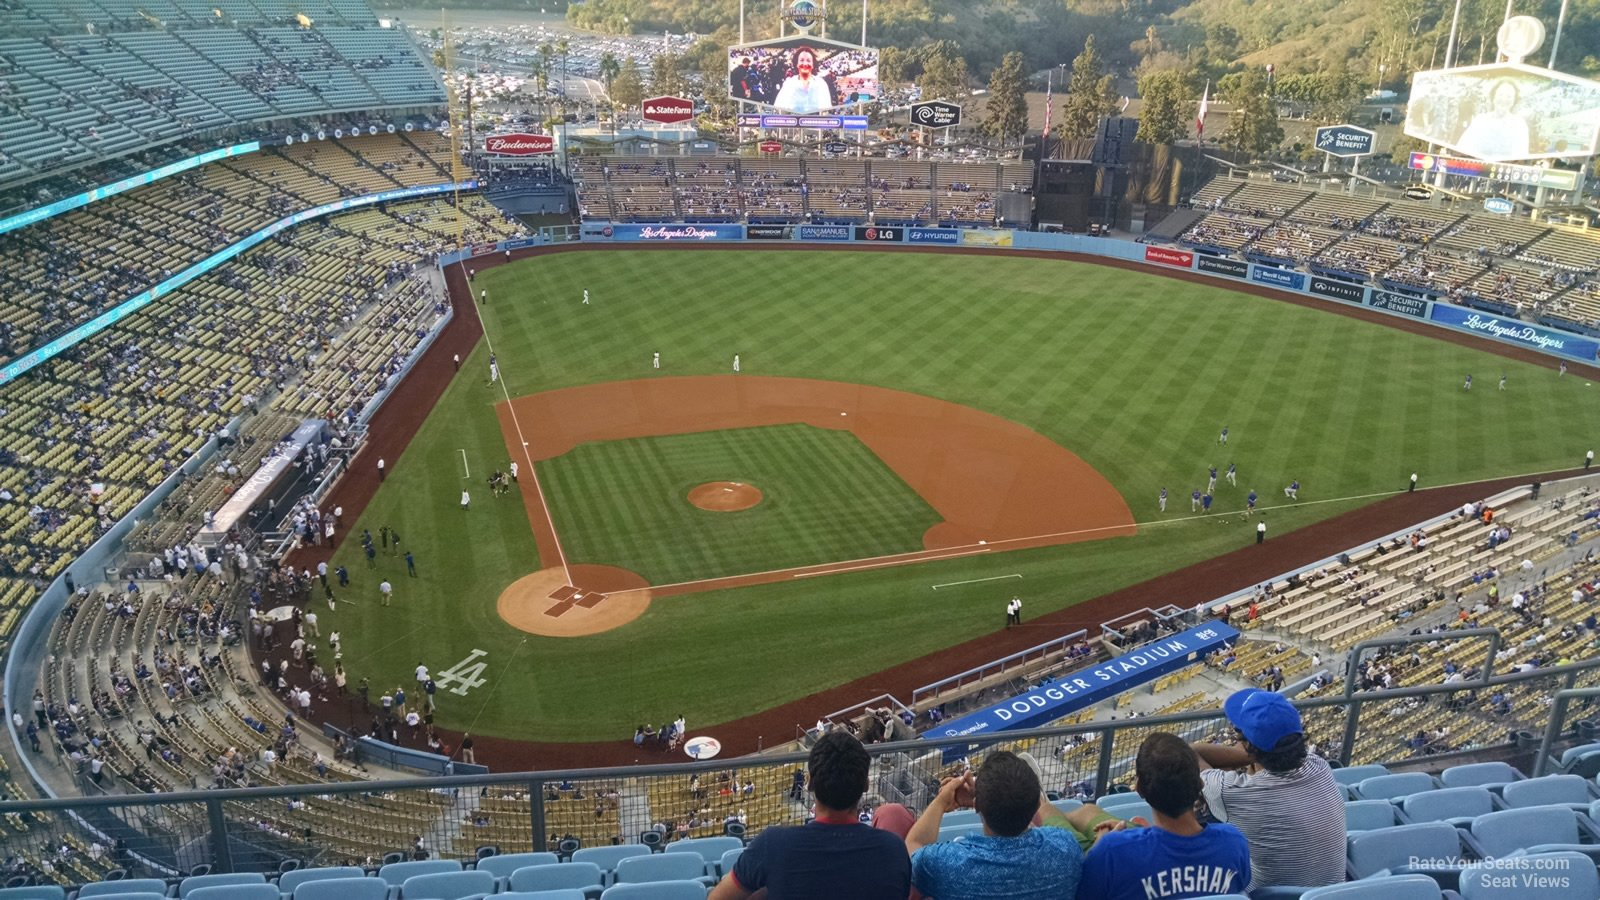 Dodger Stadium Top Deck 8 - RateYourSeats.com